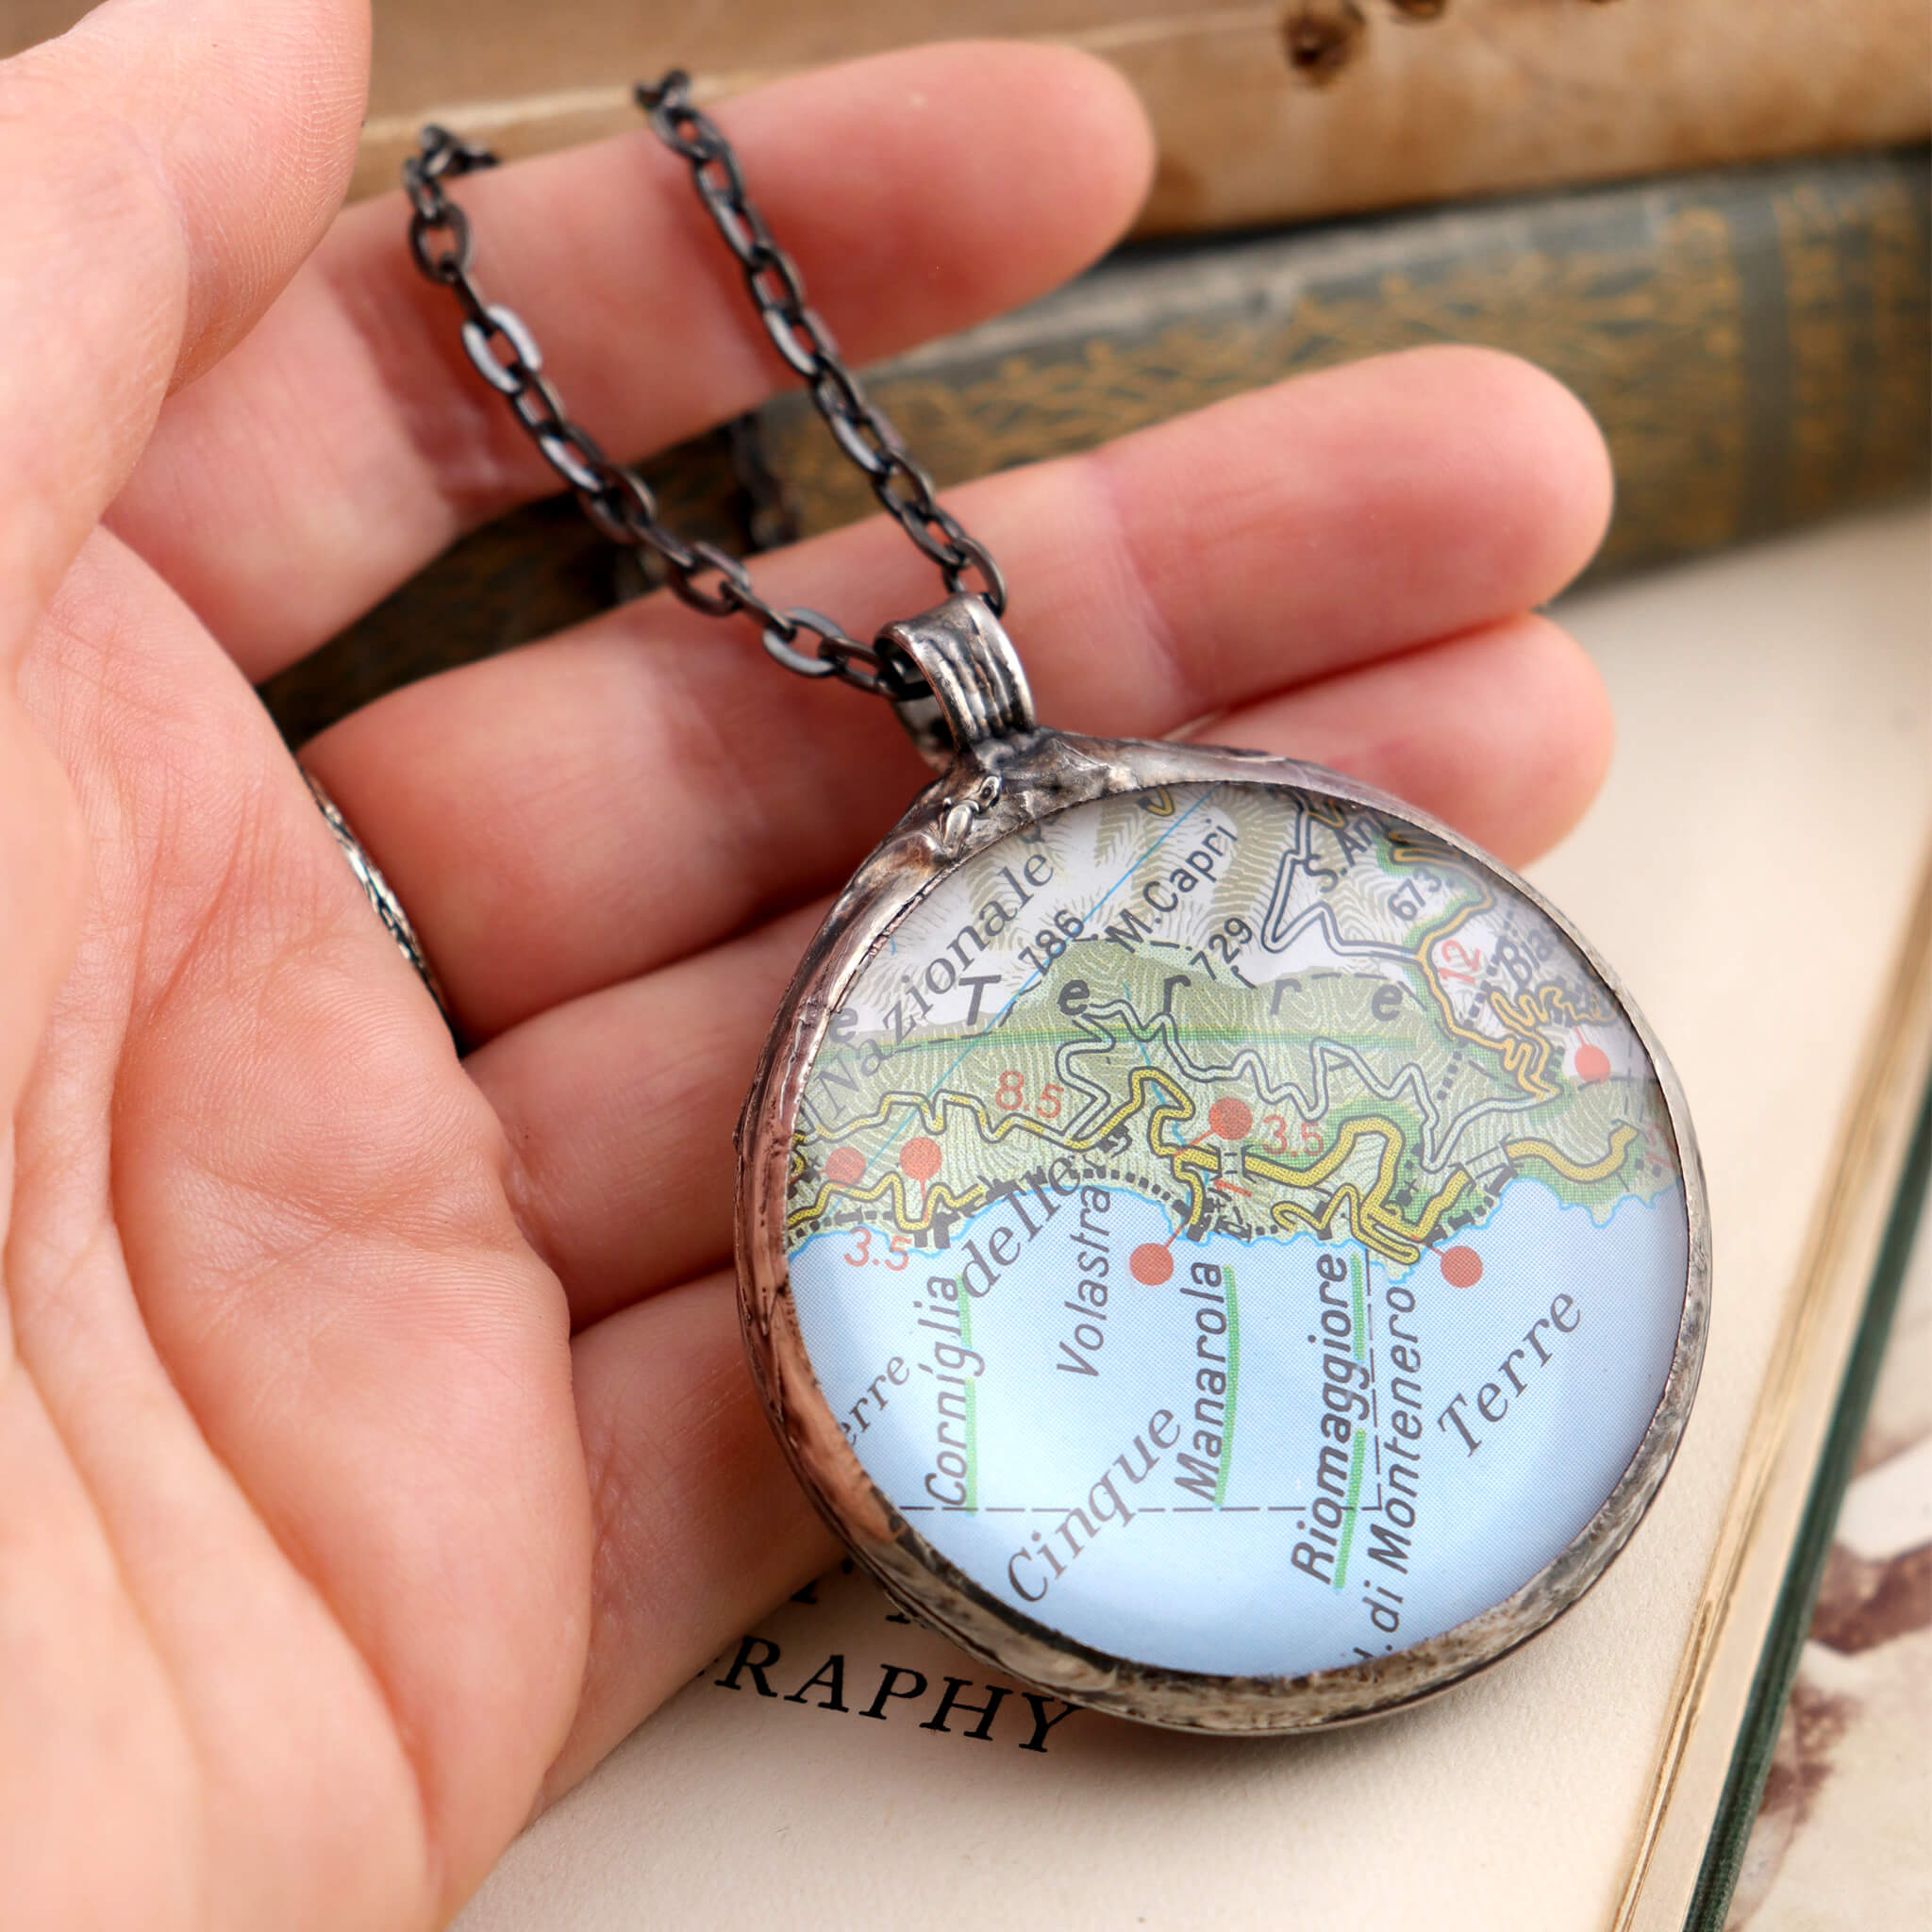 Riomaggiore map framed into Tiffany style statement necklace hold in hand